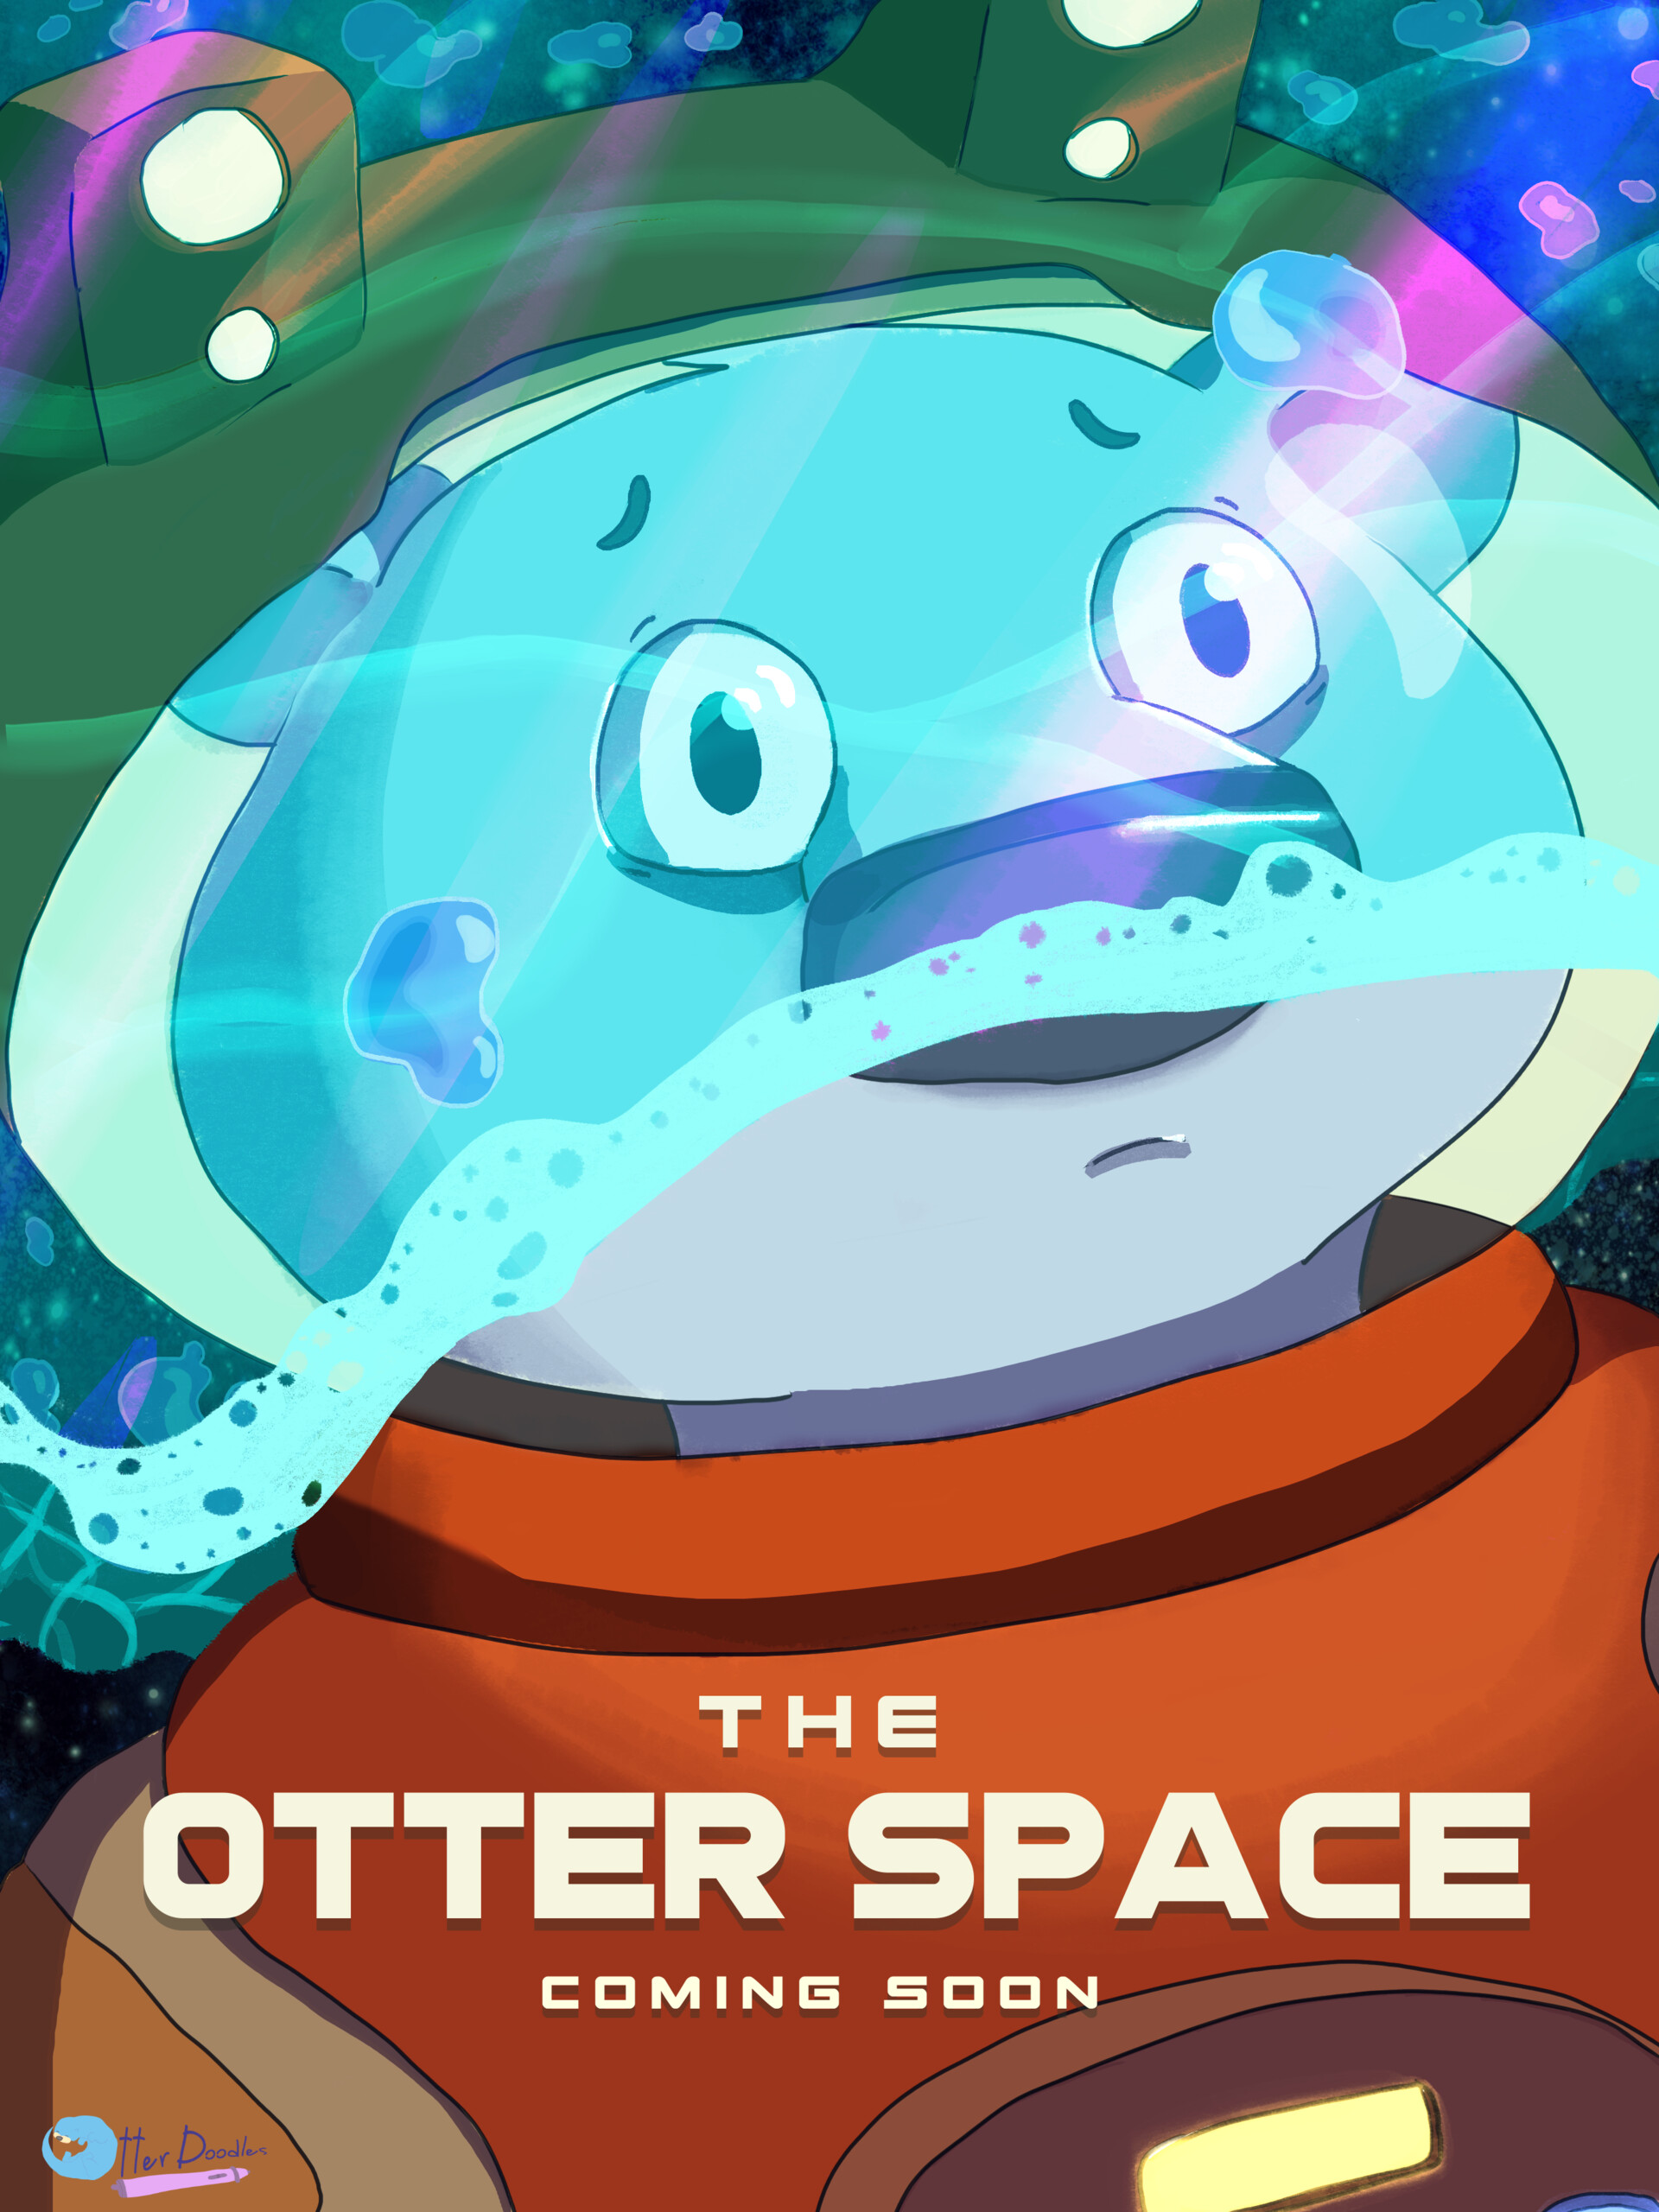 Submerged: The Otter Space Poster